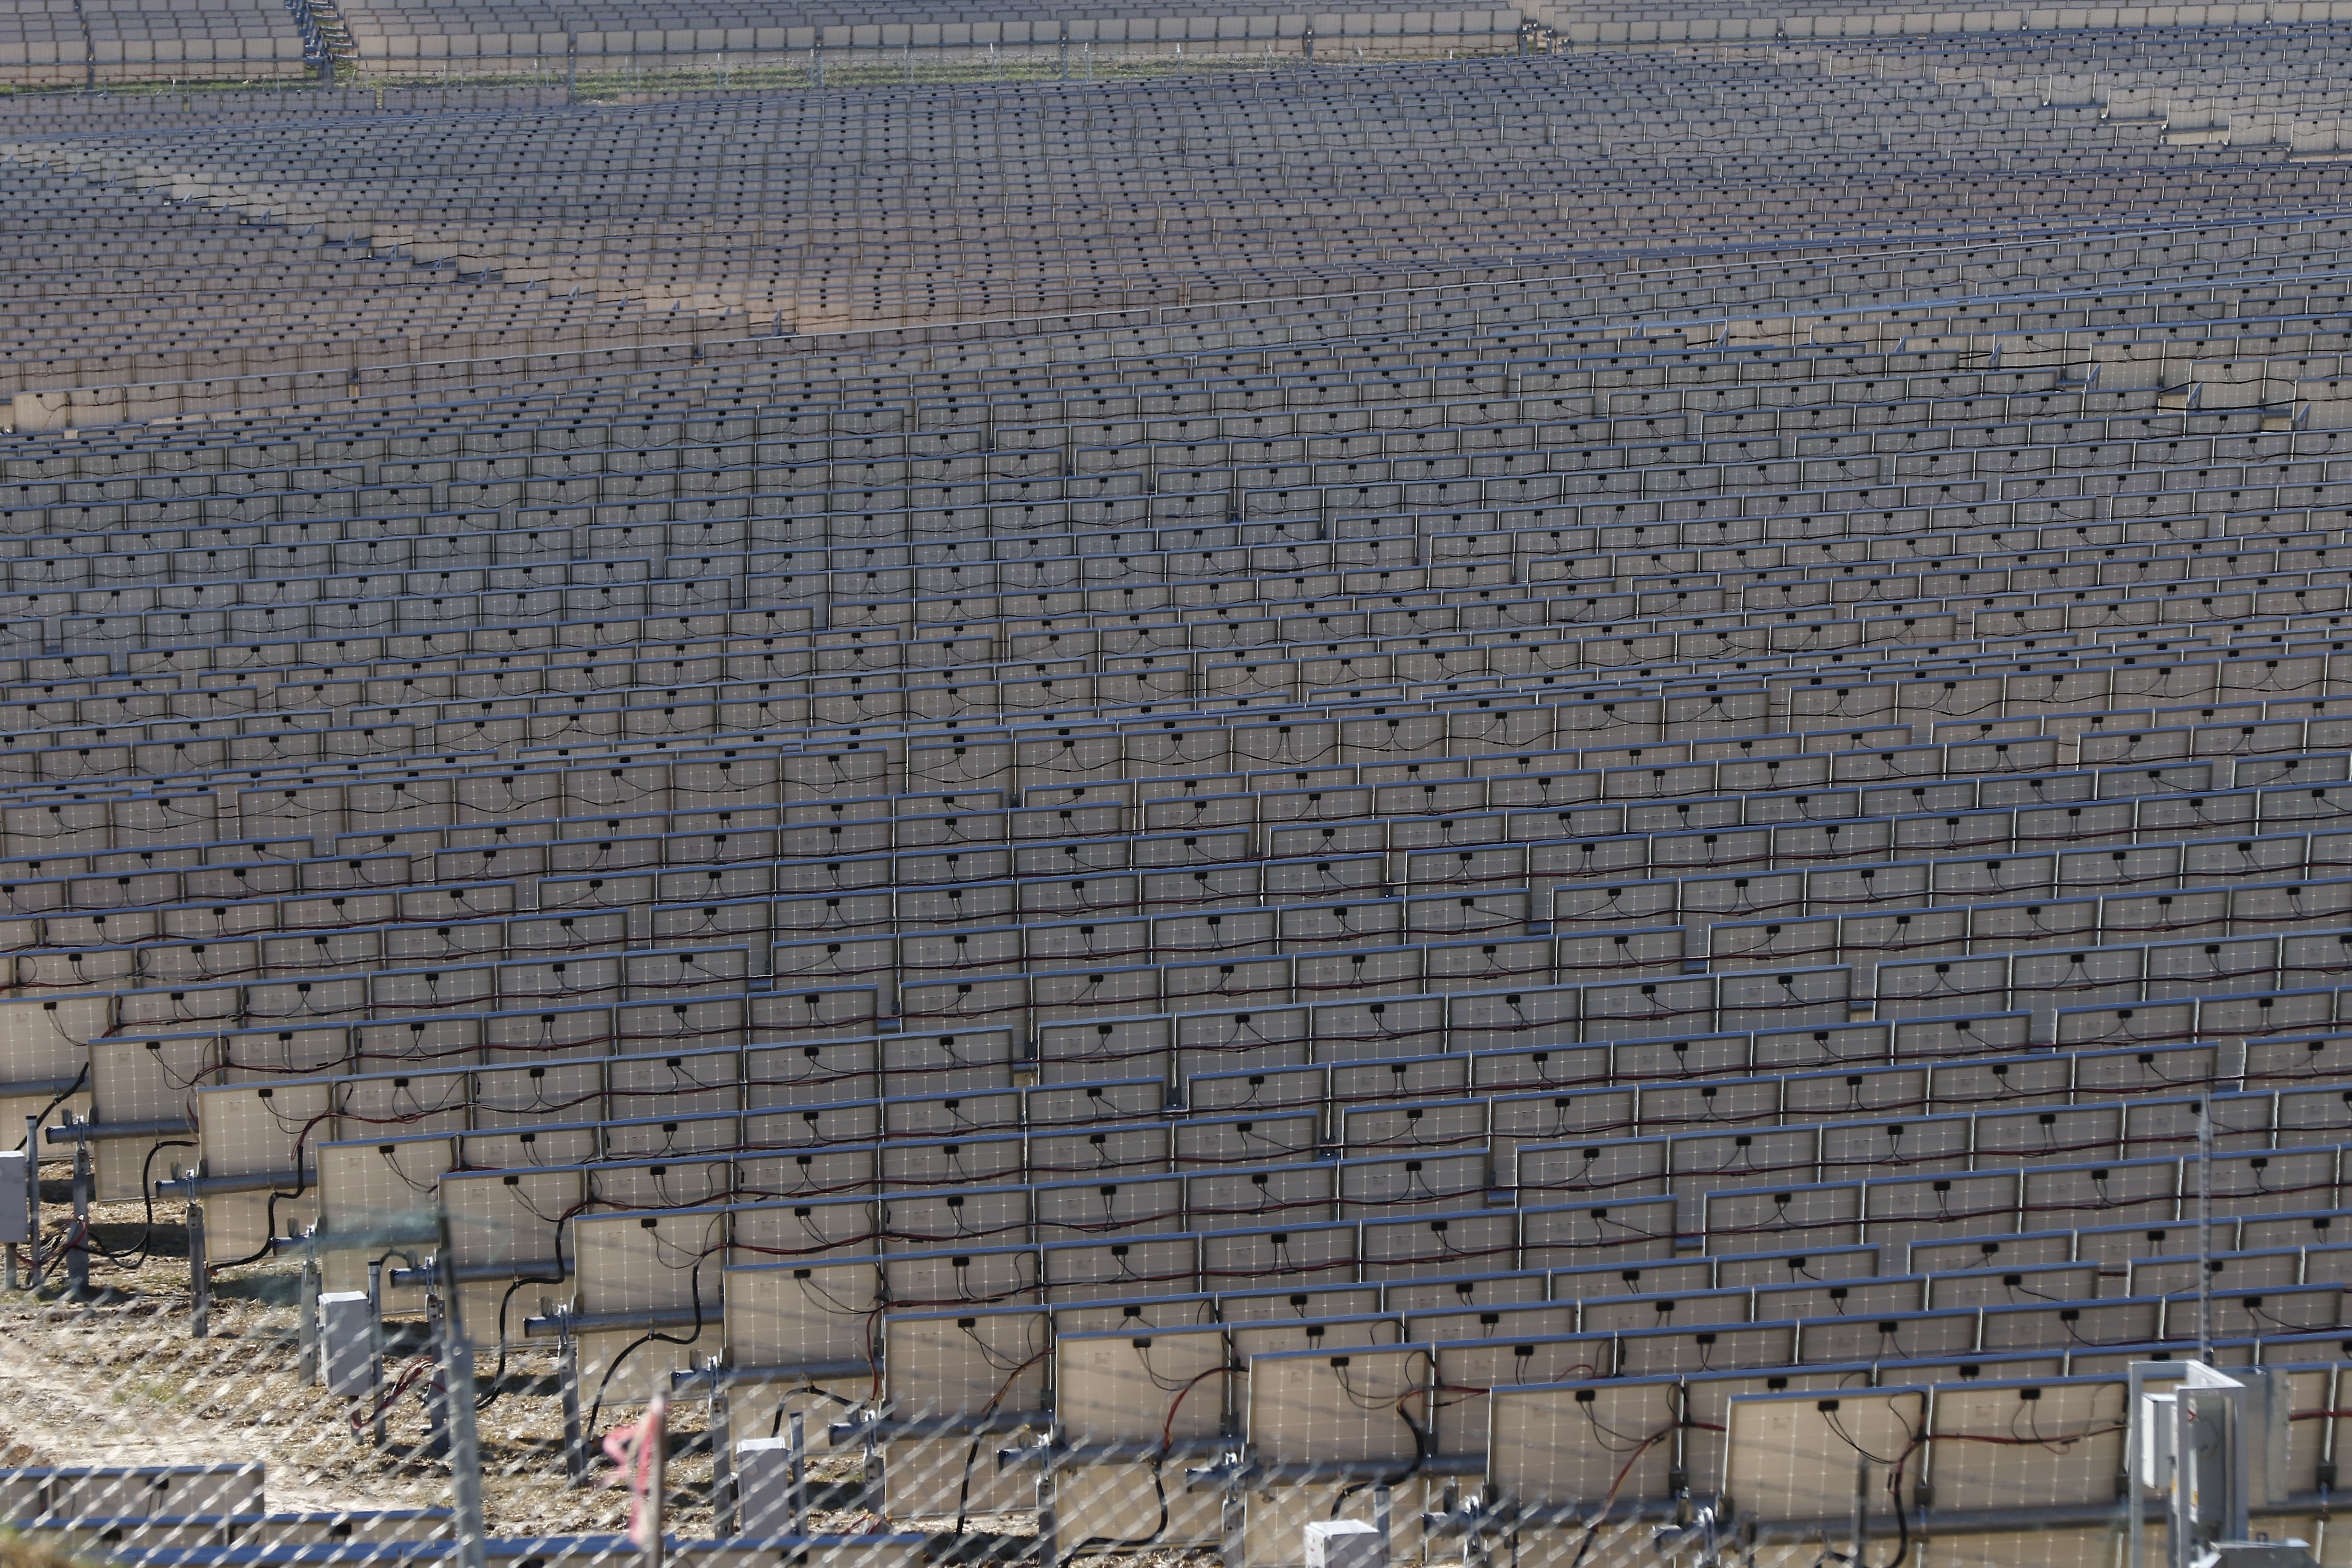 Looking like a vineyard, 206,000 polycrystalline solar panels make up the 540-acre site solar project in Lamar County near Sumrall, Miss., Wednesday, March 7, 2018. Cooperative Energy and Origis Energy officially unveiled their new joint venture 52-megawatt solar project, which began operation in December, 2017, and will power up to 11,400 homes. (AP Photo/Rogelio V. Solis)